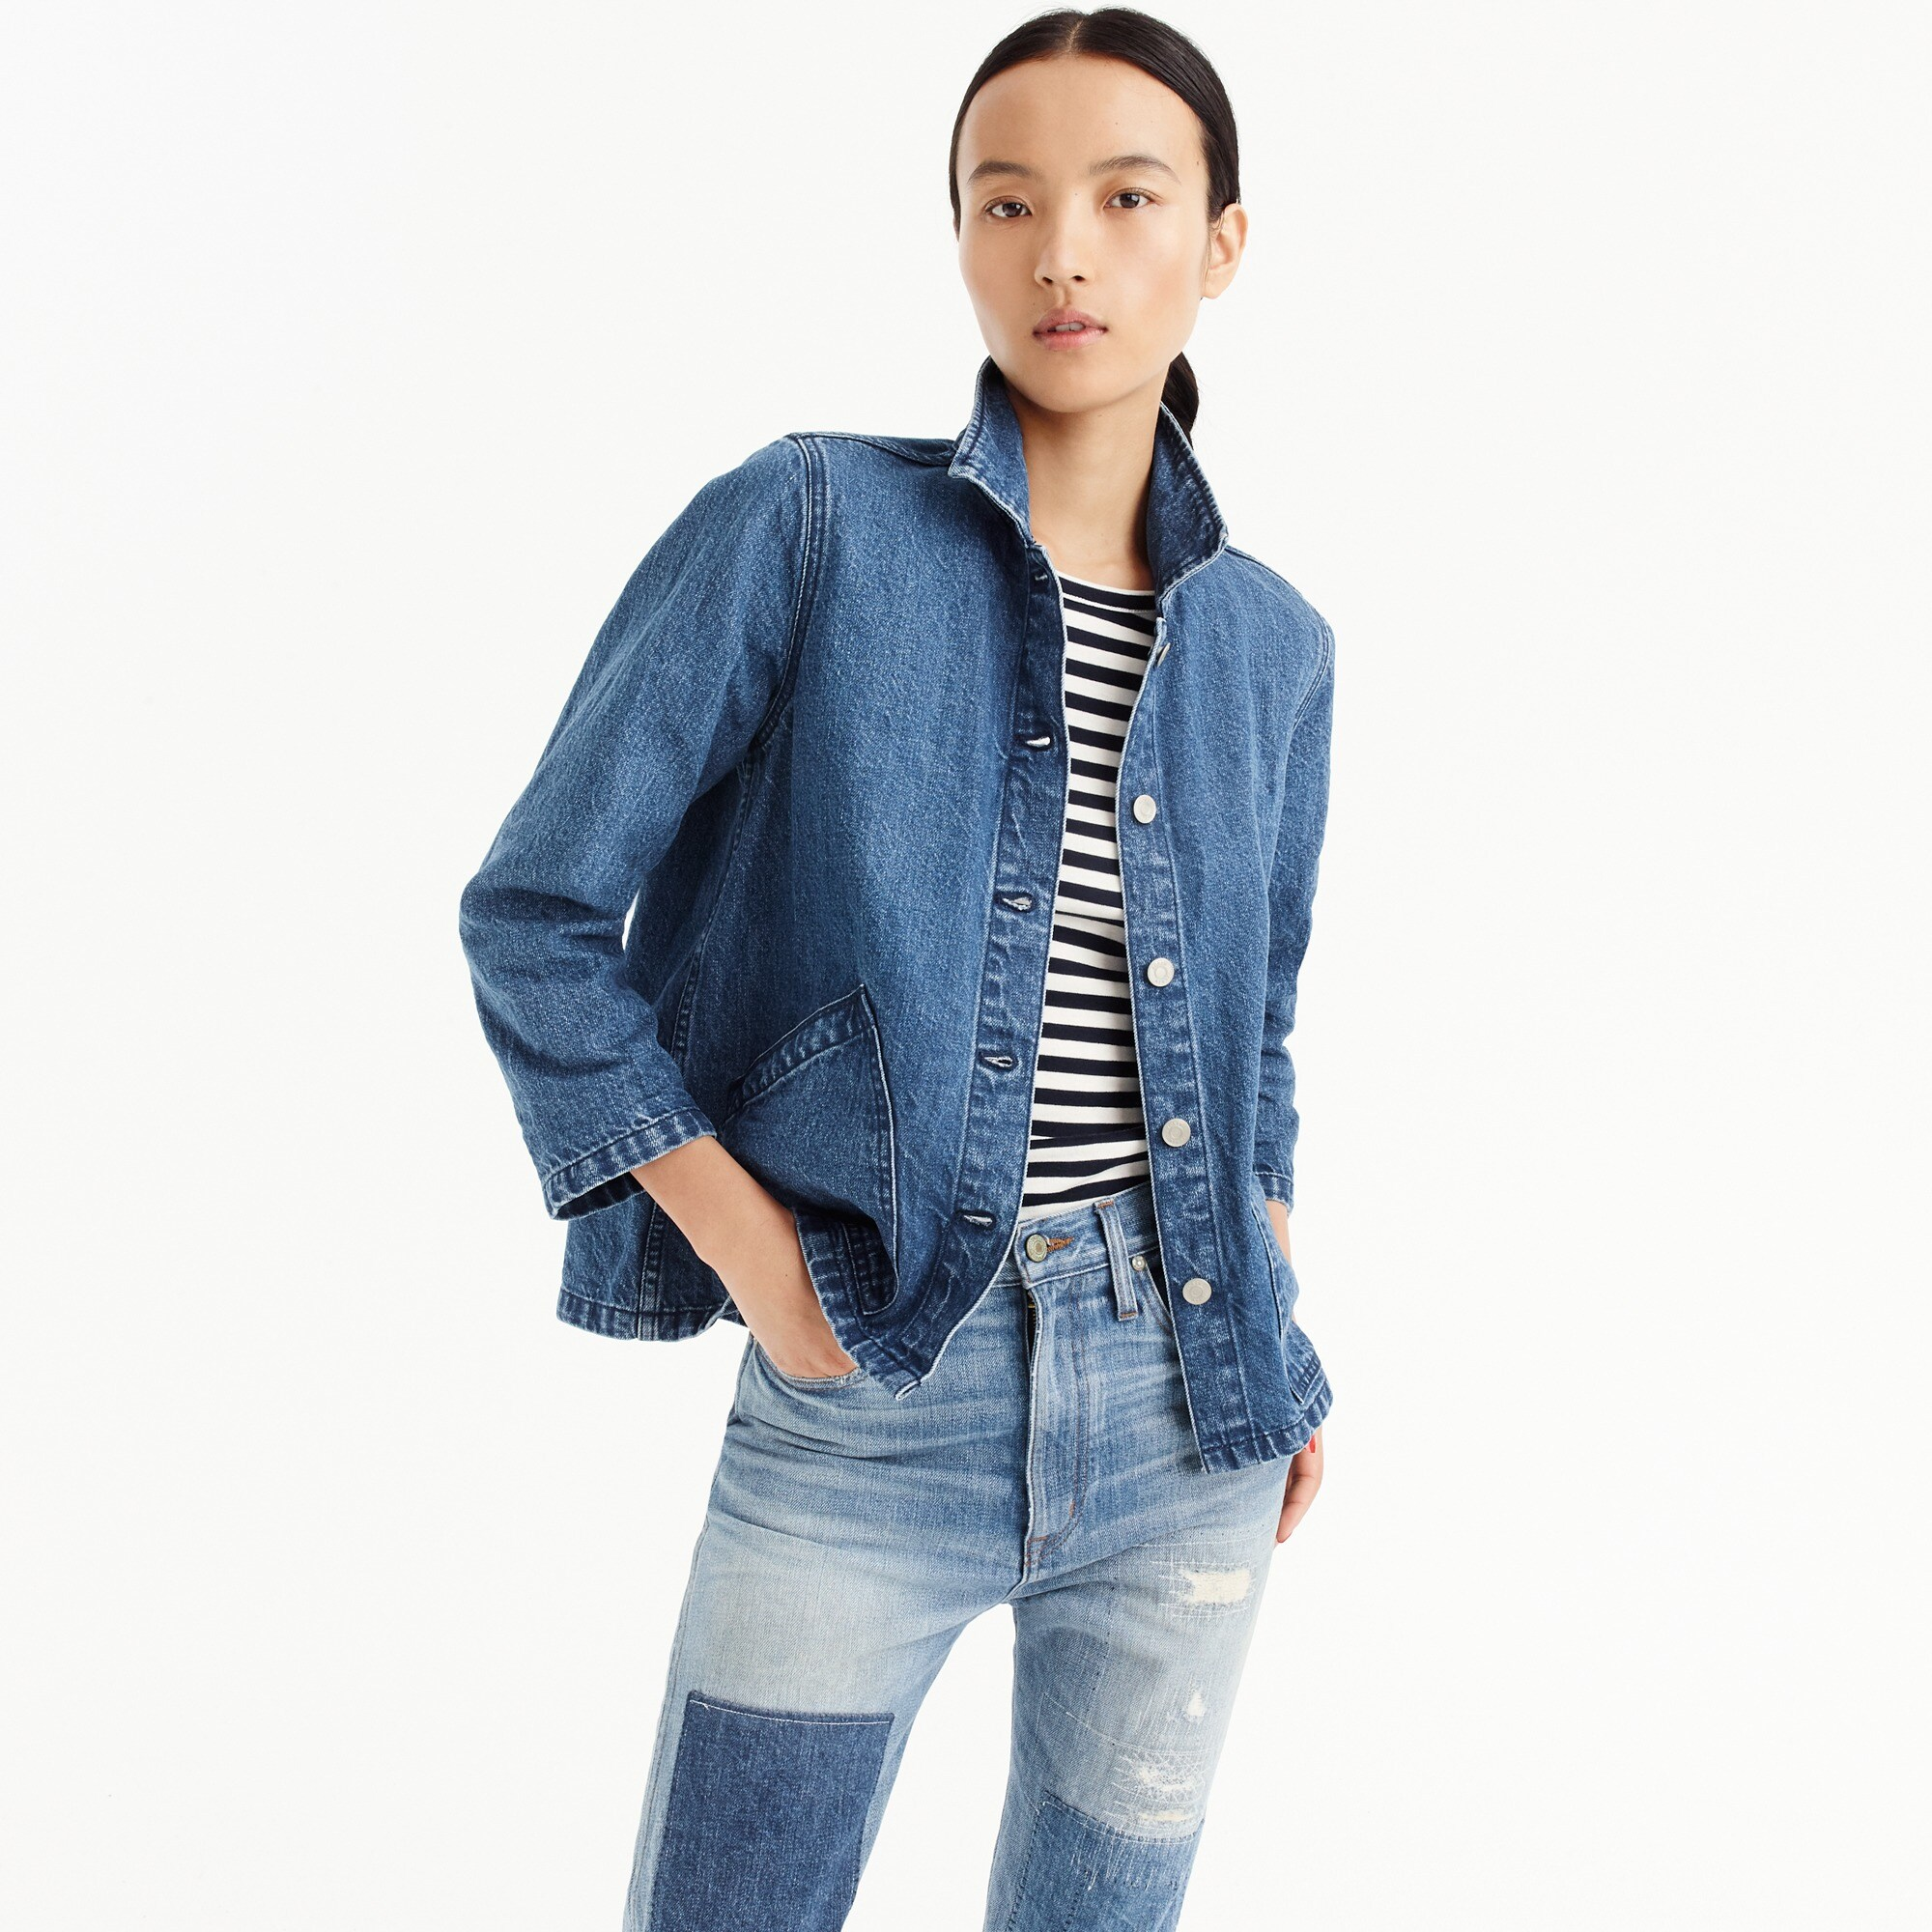 Image 1 for Denim swing jacket in Lily wash